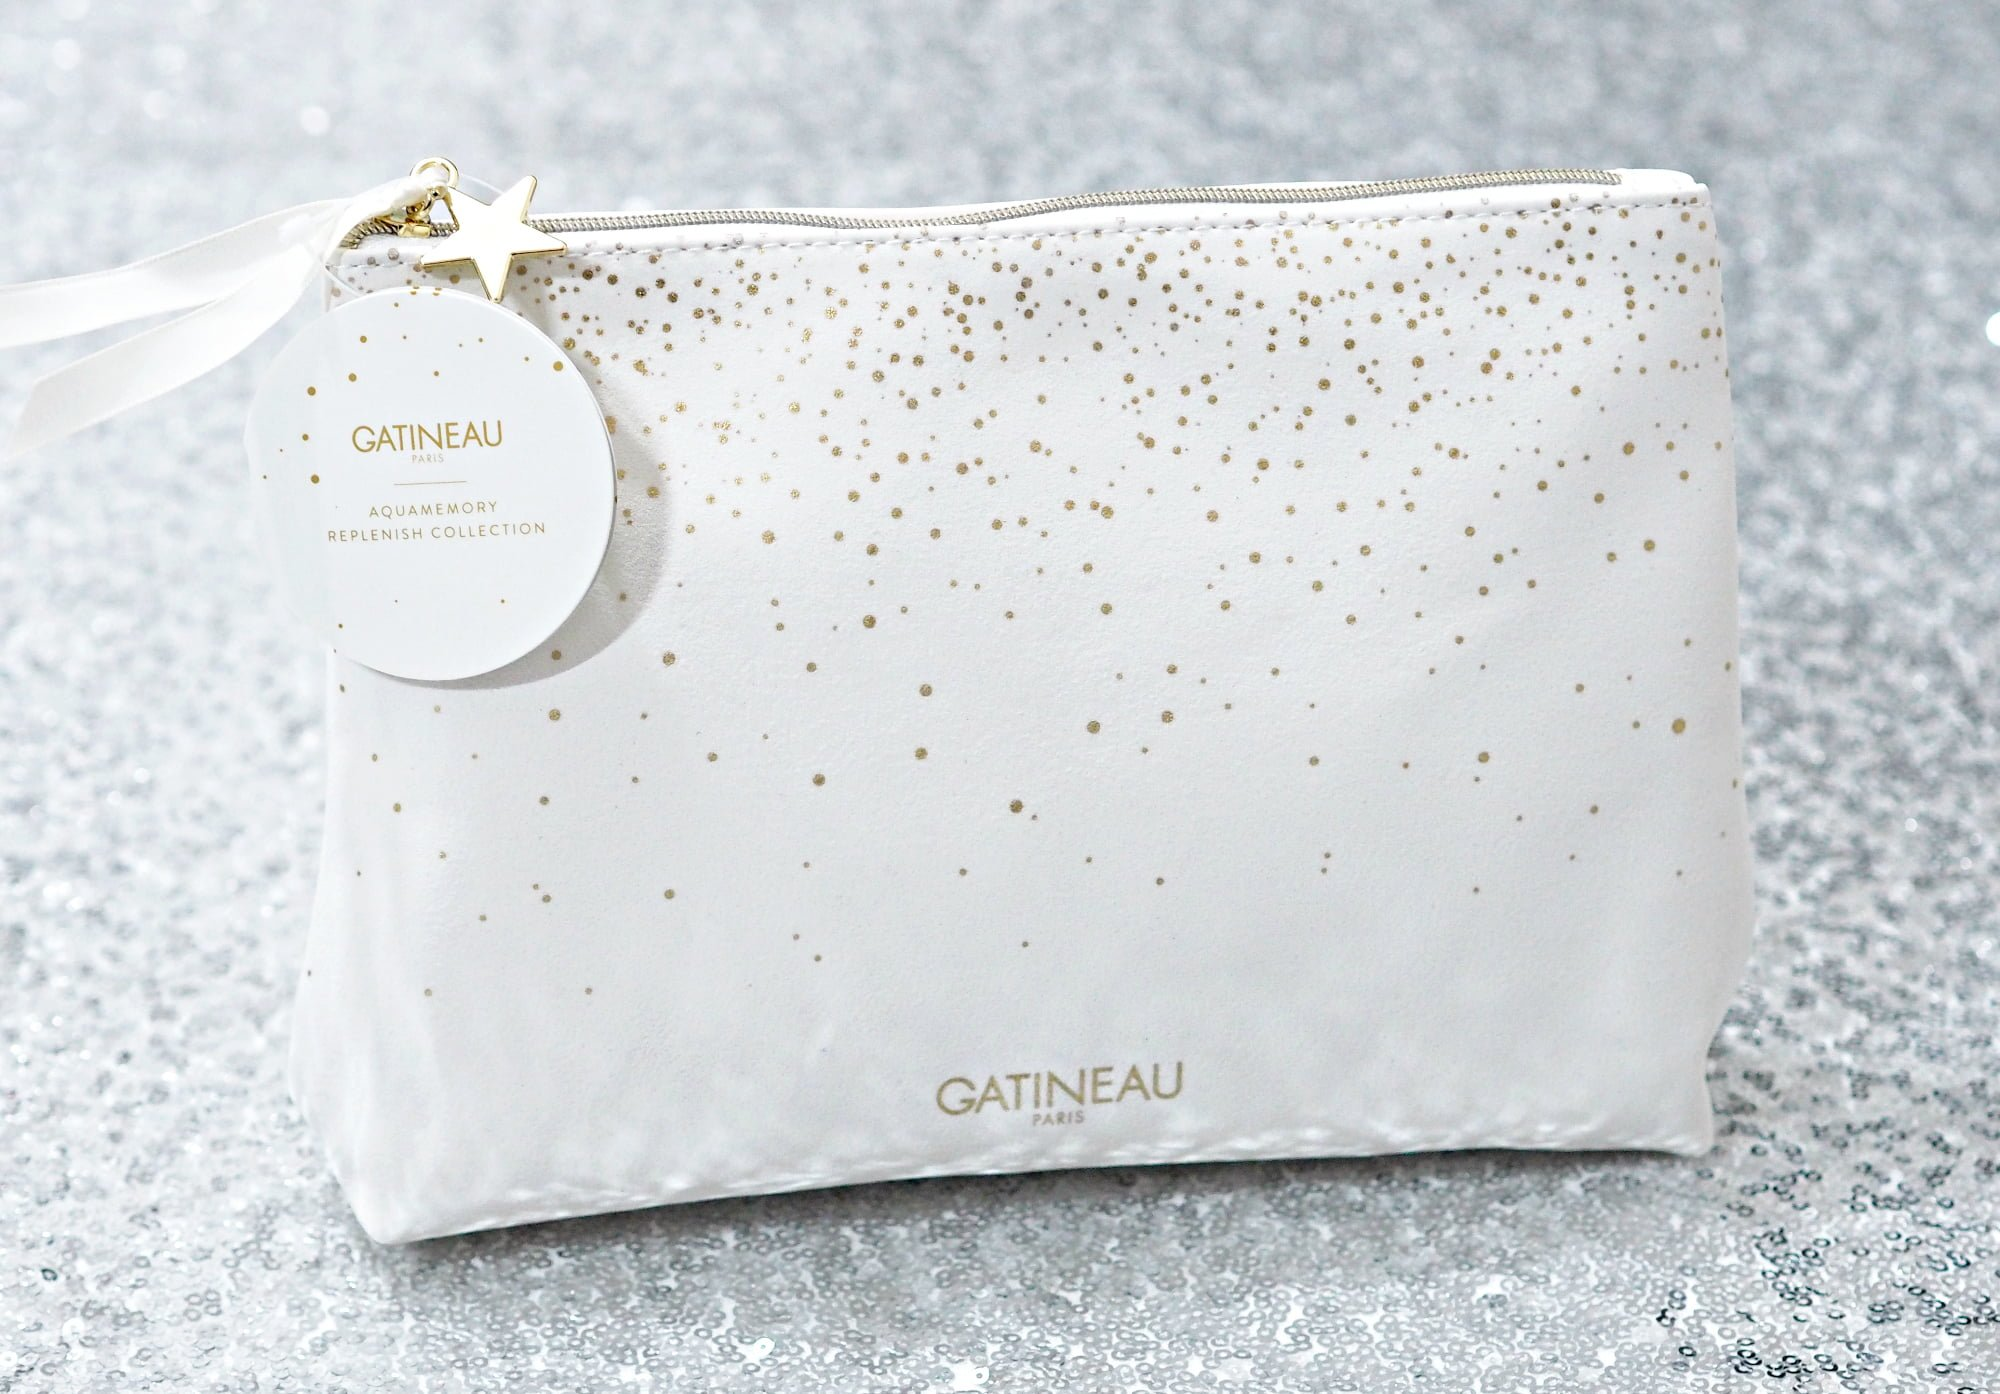 Gatineau Christmas Gift Guide ft Luxury Skincare Gift Sets with the Perfection Ultime, Defilift 3D, Aquamemory and Gentle Silk Collections